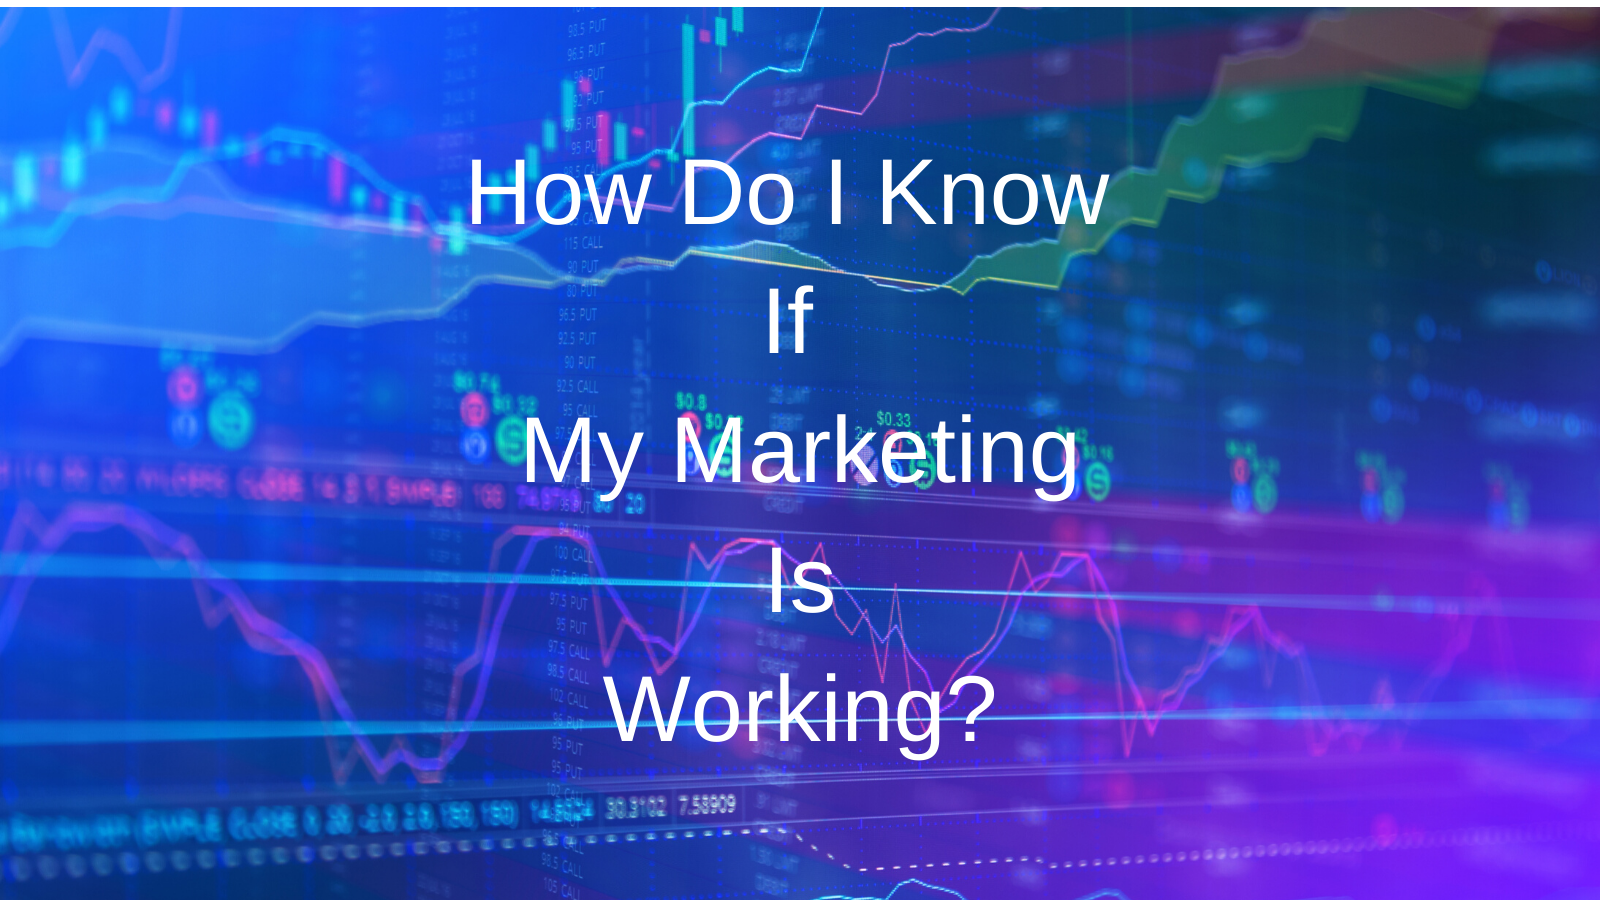 How Do I Know If My Marketing Is Working?